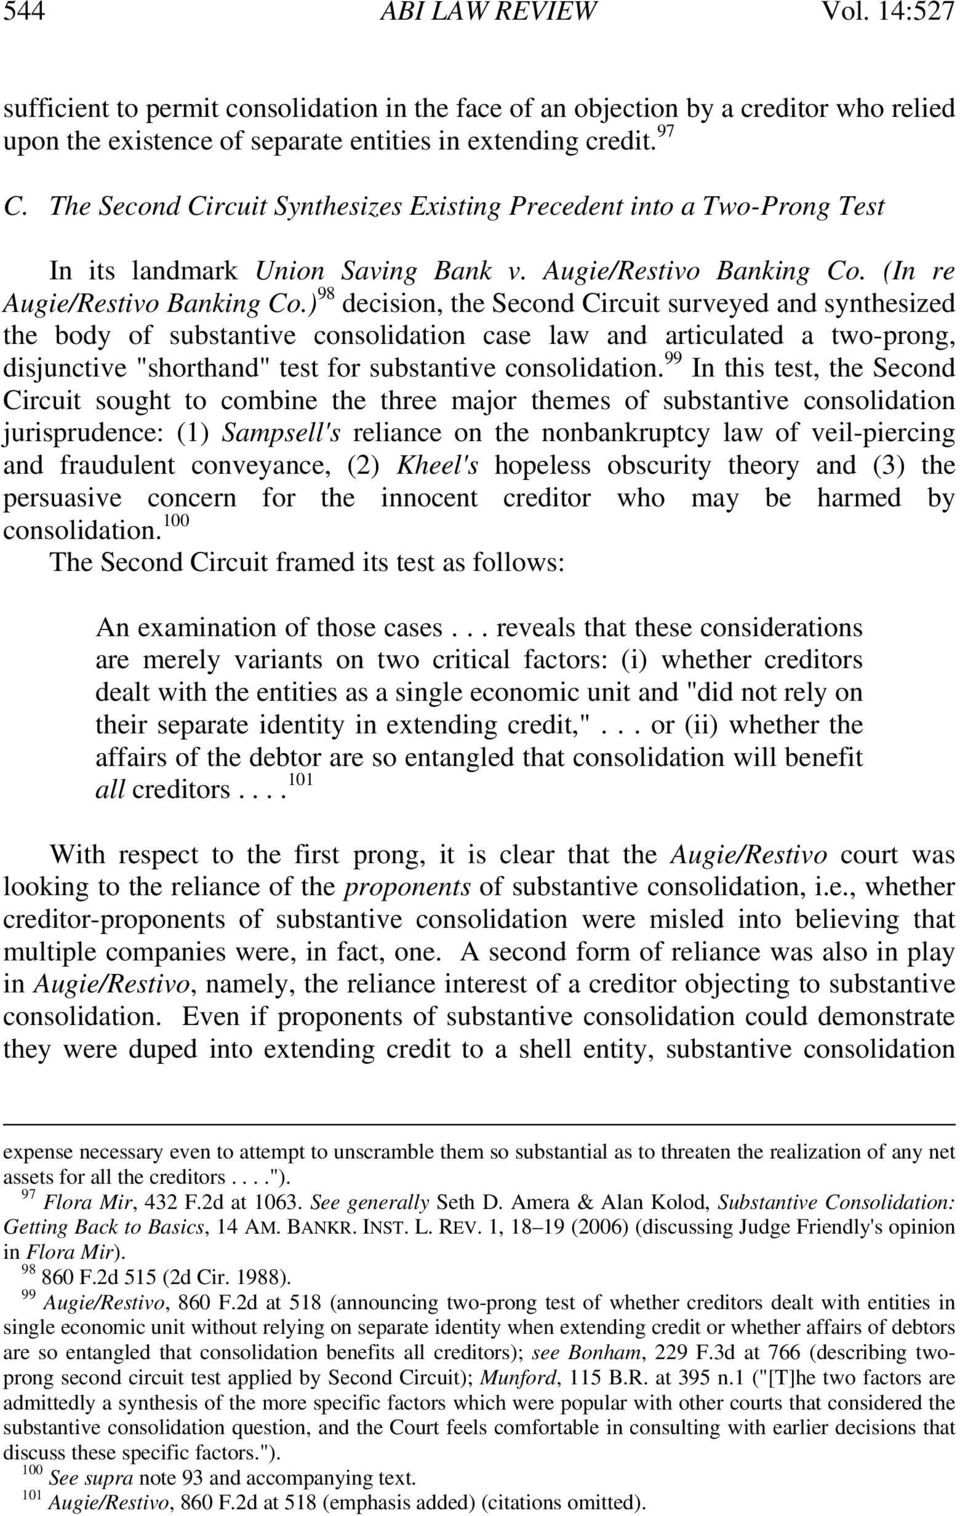 ") 98 decision, the Second Circuit surveyed and synthesized the body of substantive consolidation case law and articulated a two-prong, disjunctive ""shorthand"" test for substantive consolidation."